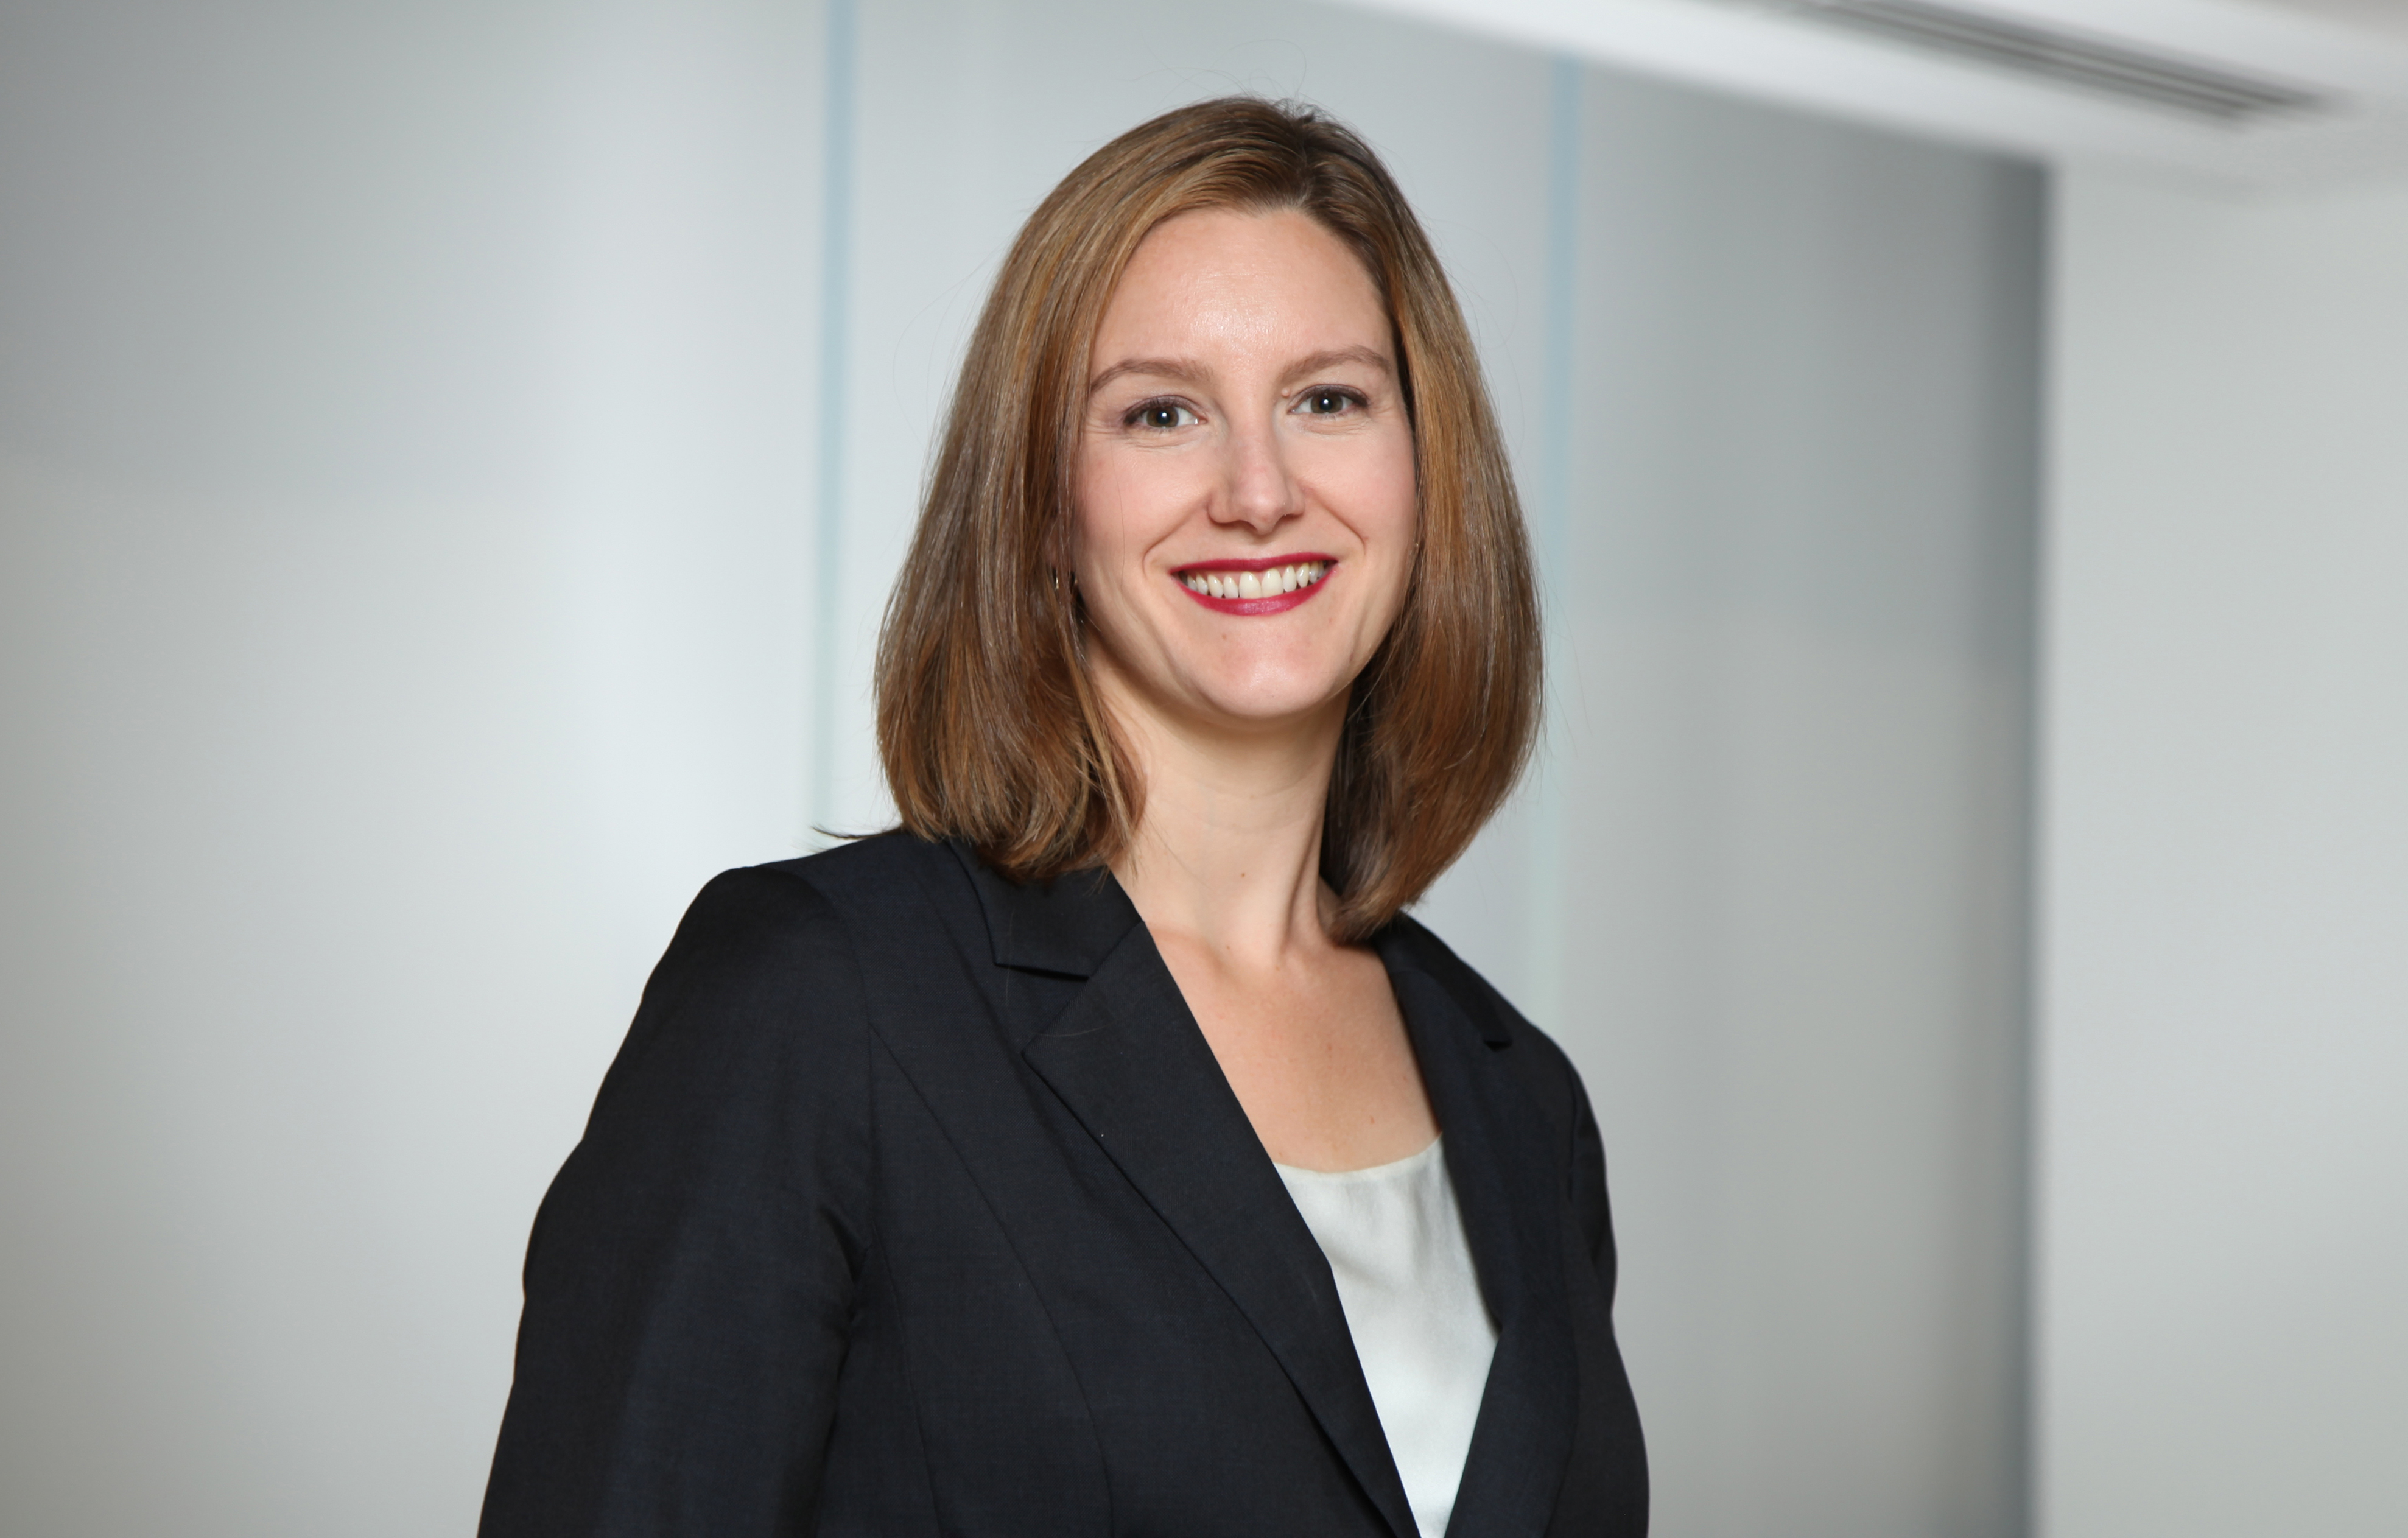 Hunton & Williams LLP has appointed partner Amanda L. Wait to lead its competition and consumer protection practice. (Photo: Business Wire)